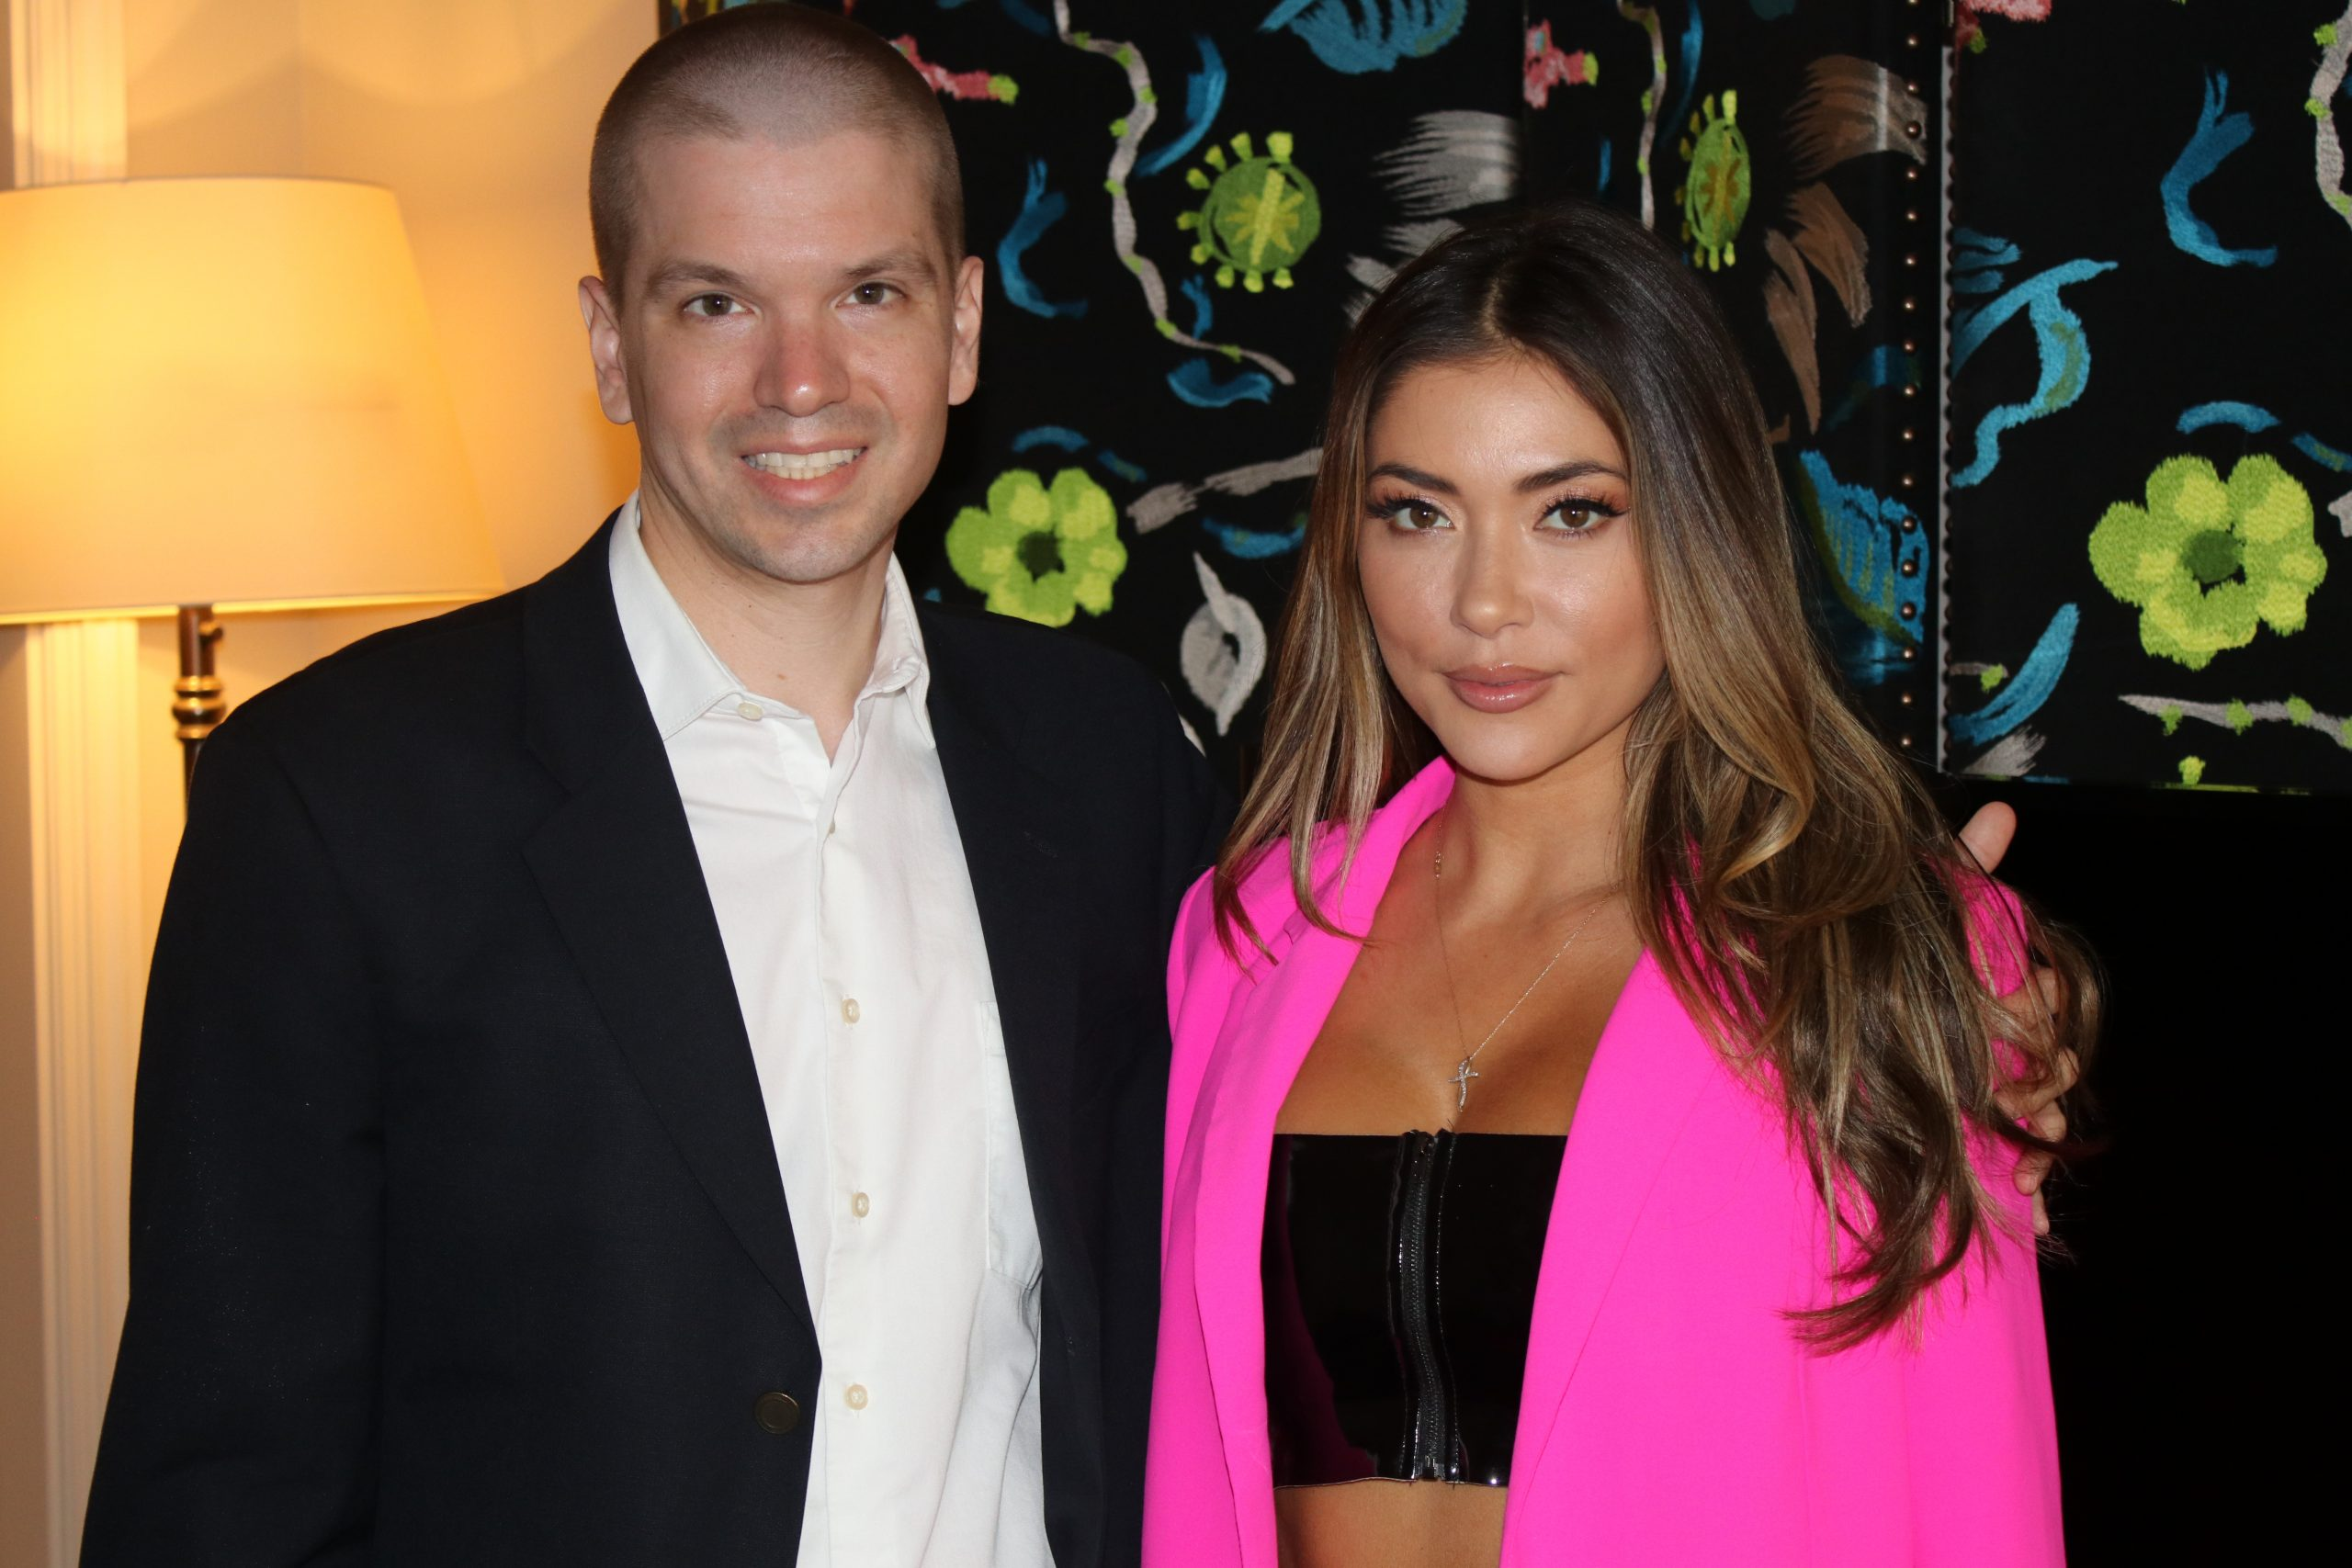 Arianny Celeste 2019, Arianny Celeste, Chris Yandek, Arianny Celeste Las Vegas, Arianny Celeste Interview, Arianny Celeste International Fight Week, Arianny Celeste June 2019